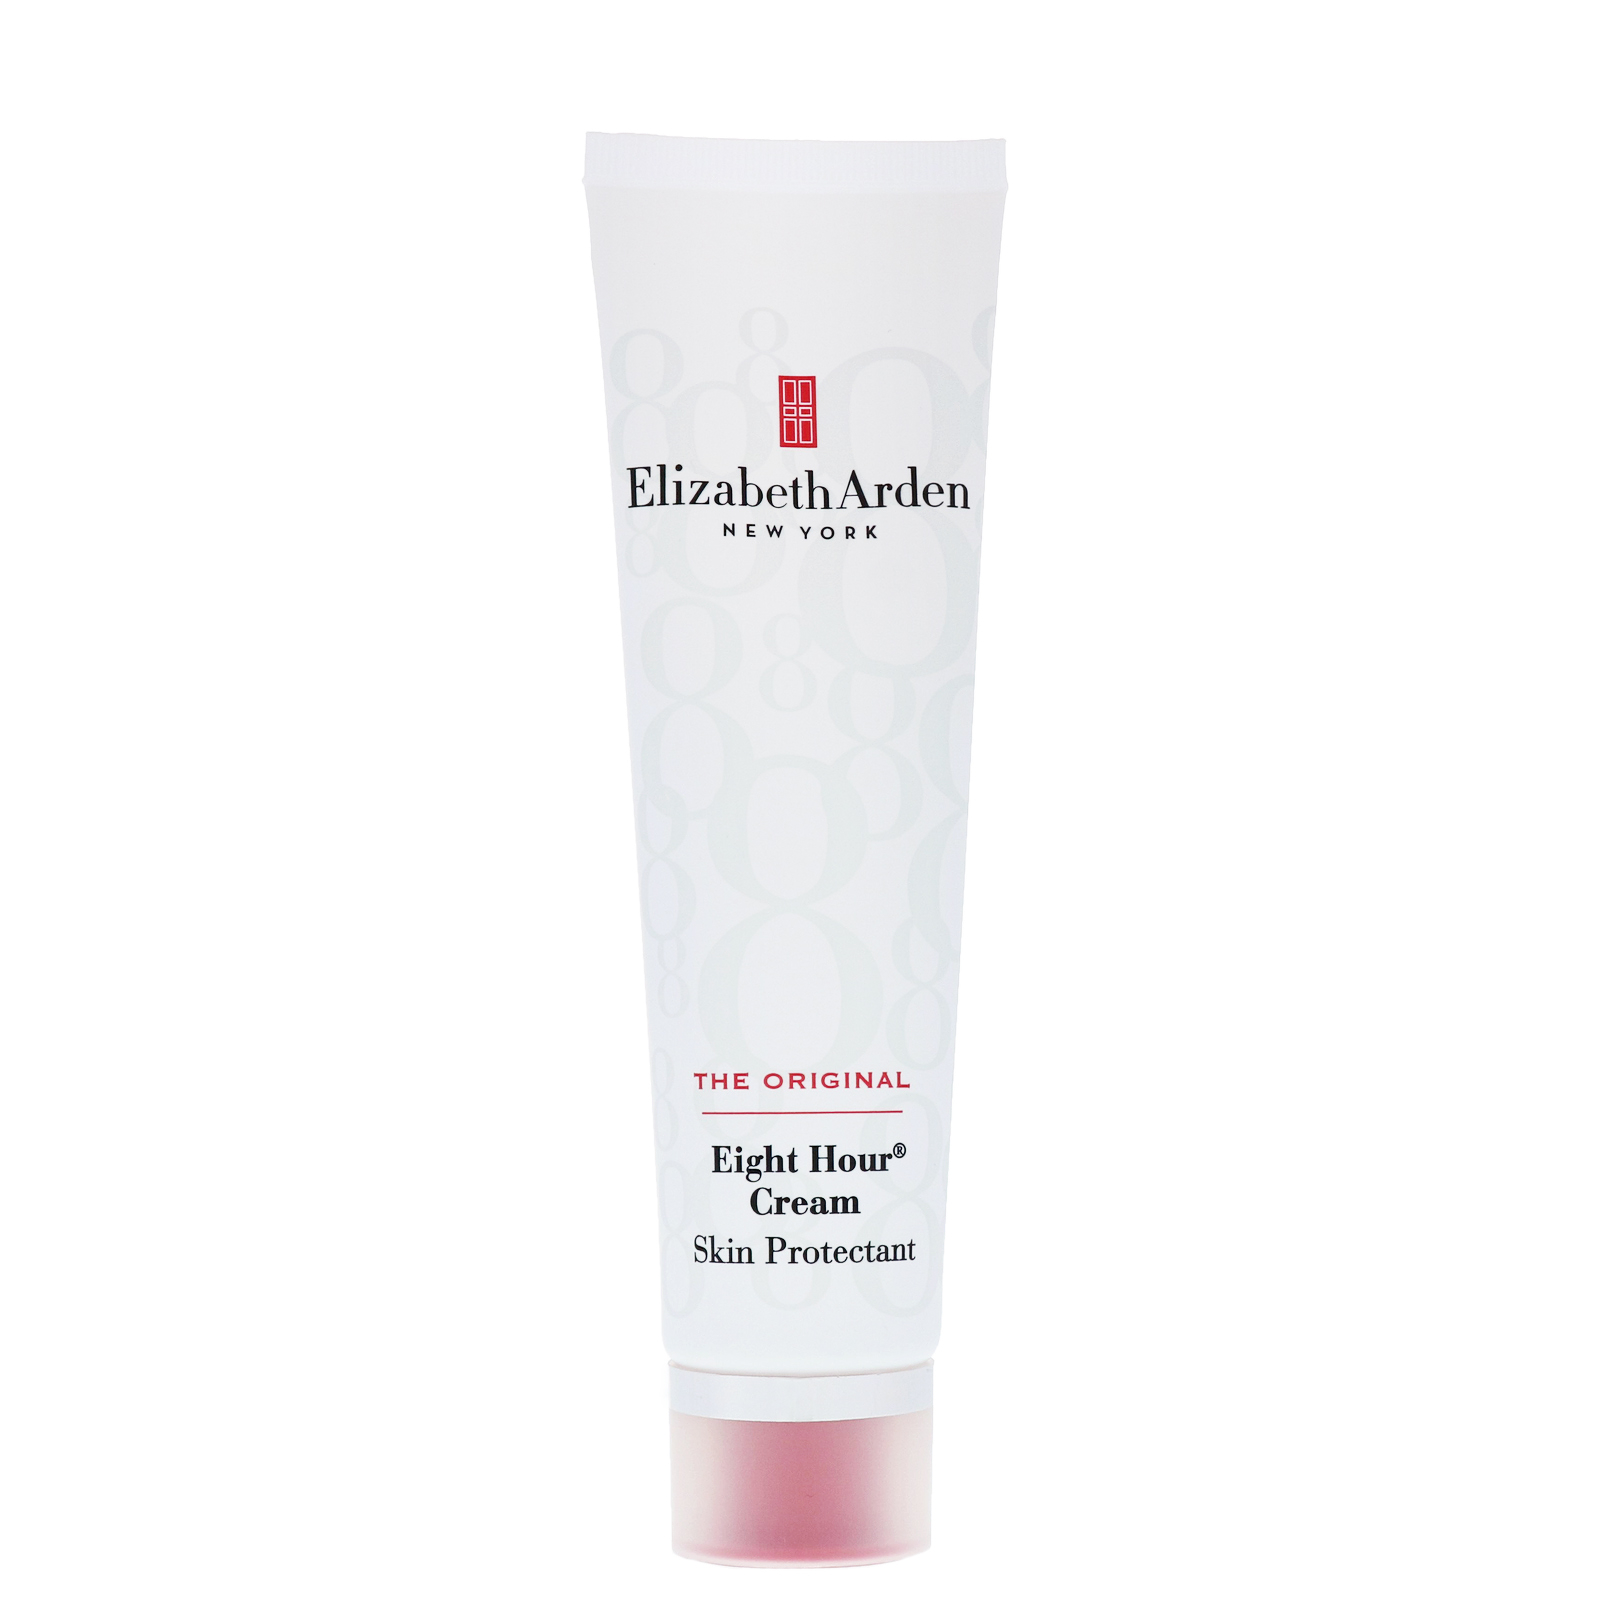 Elizabeth Arden Moisturisers Eight Hour Skin Protectant Cream Limited Edition Packaging 50ml / 1.7 fl.oz.